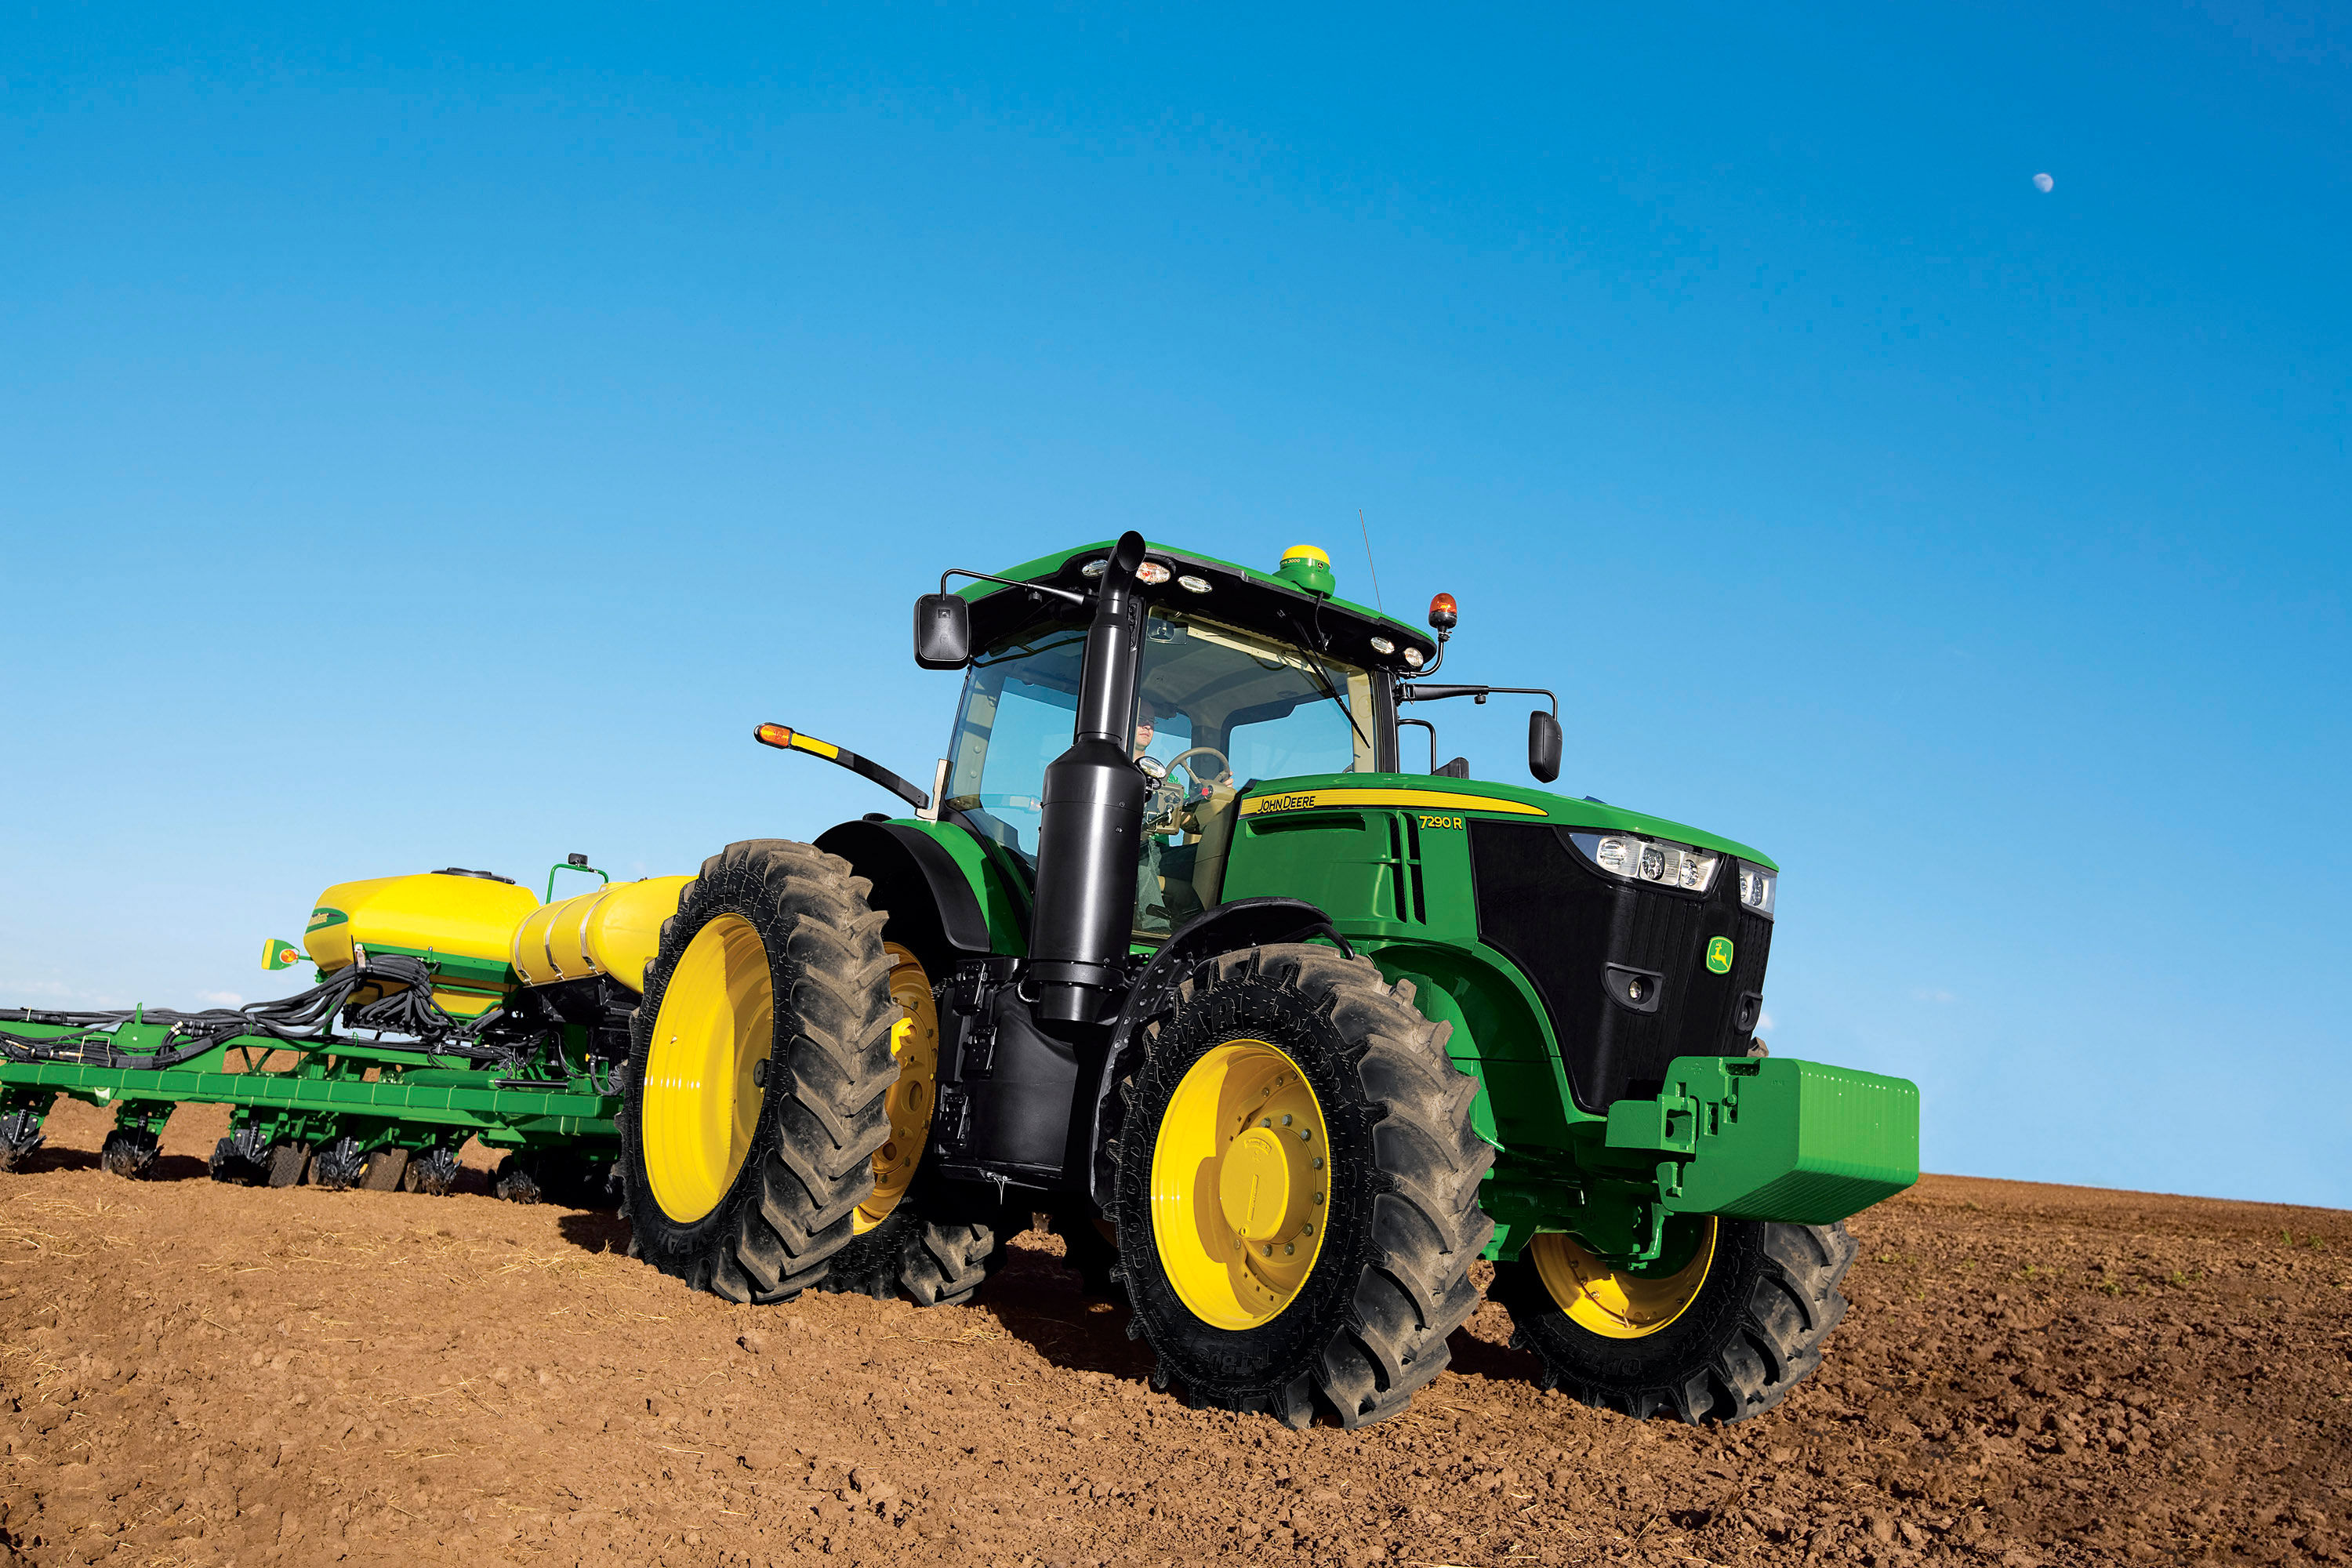 New John Deere 7R Tractors Boost Power, Performance and ...